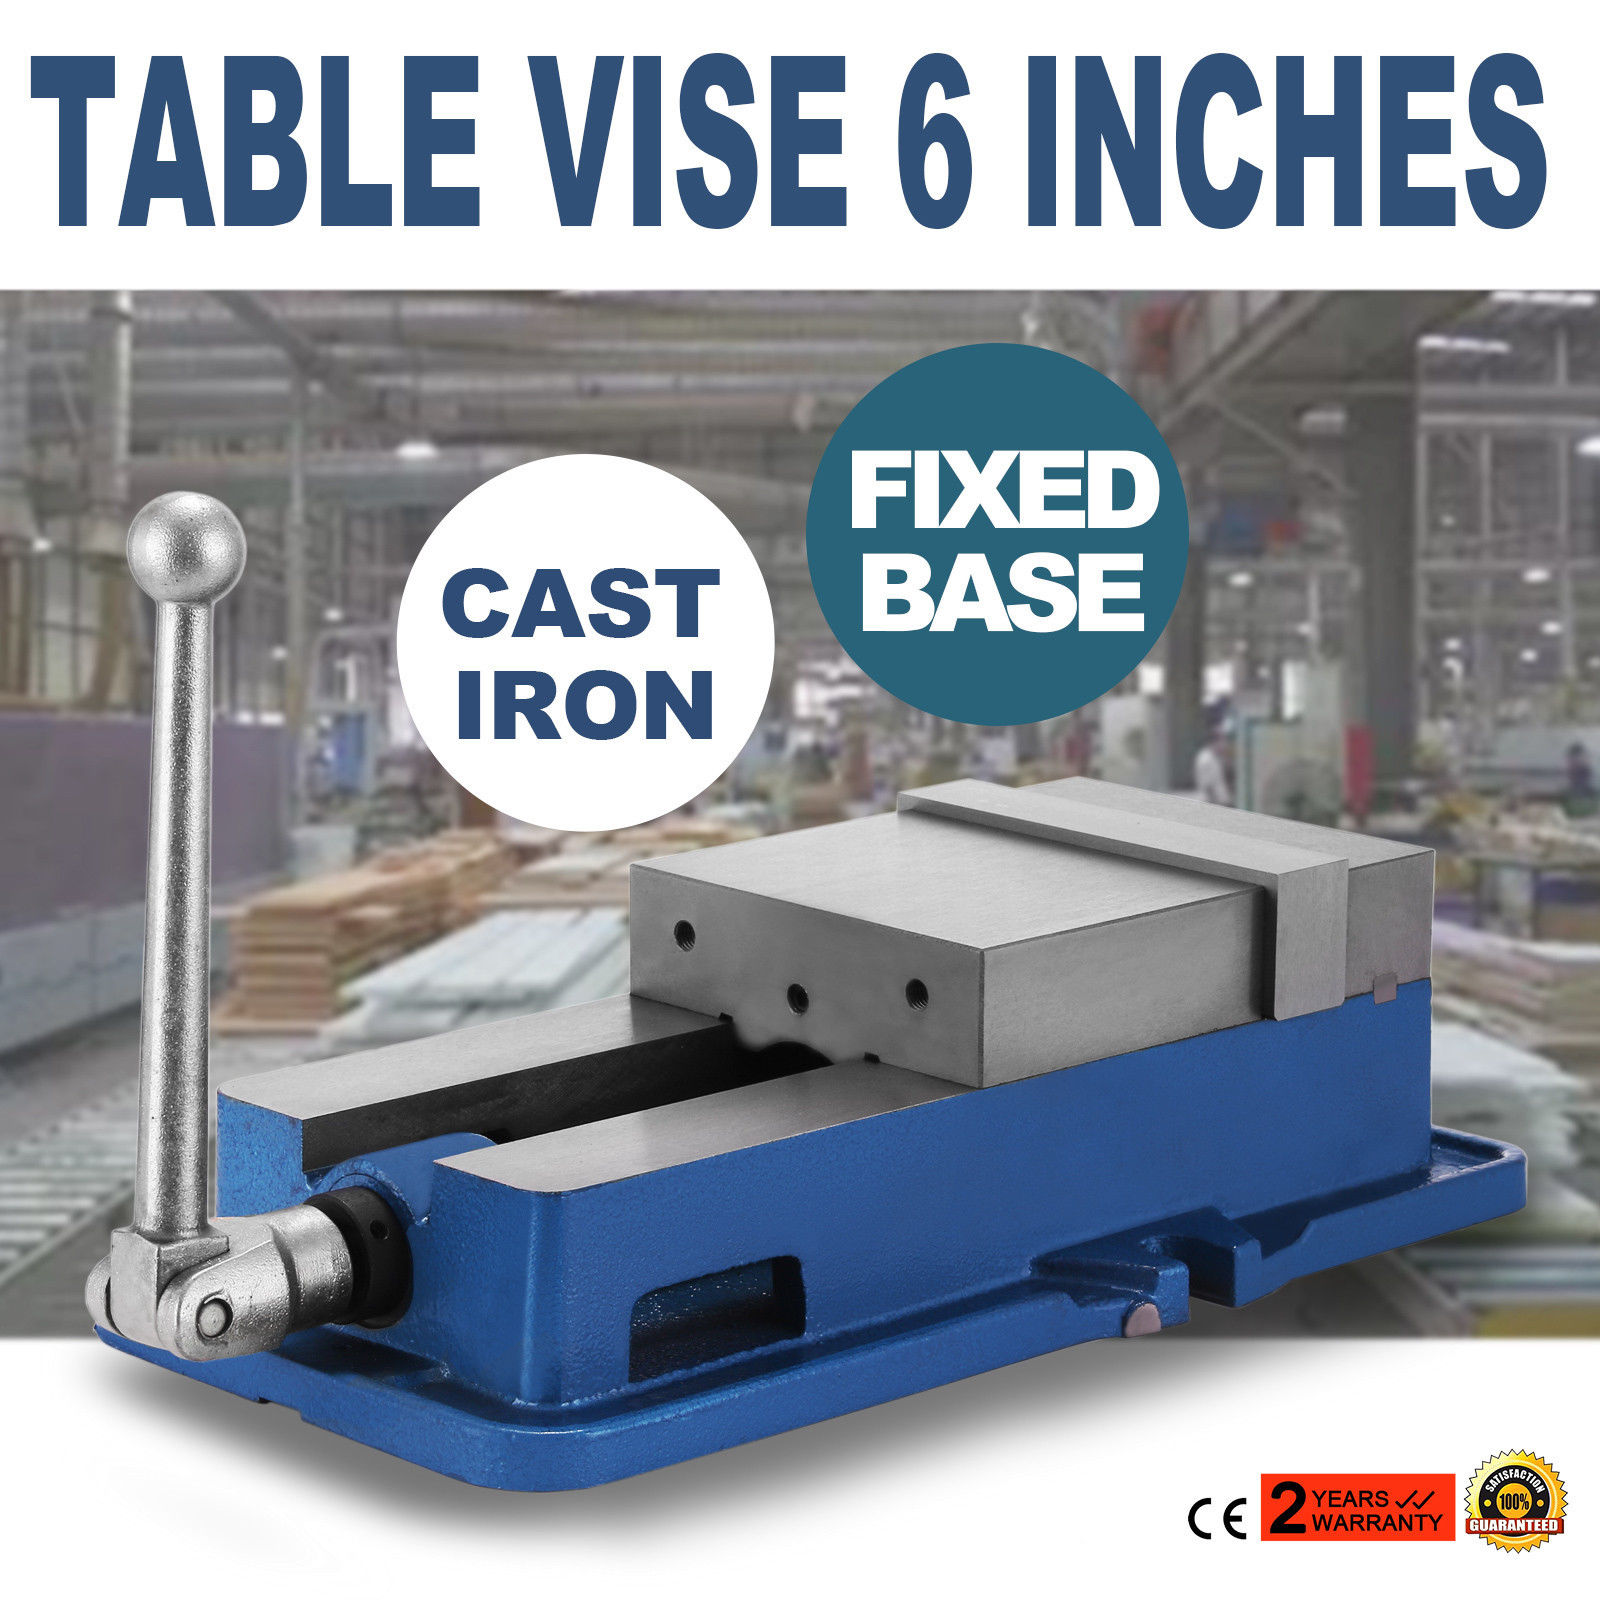 6 Inch Vise Precision Milling Drilling Machine Clamp Vice Fixed Base NEW <span style=